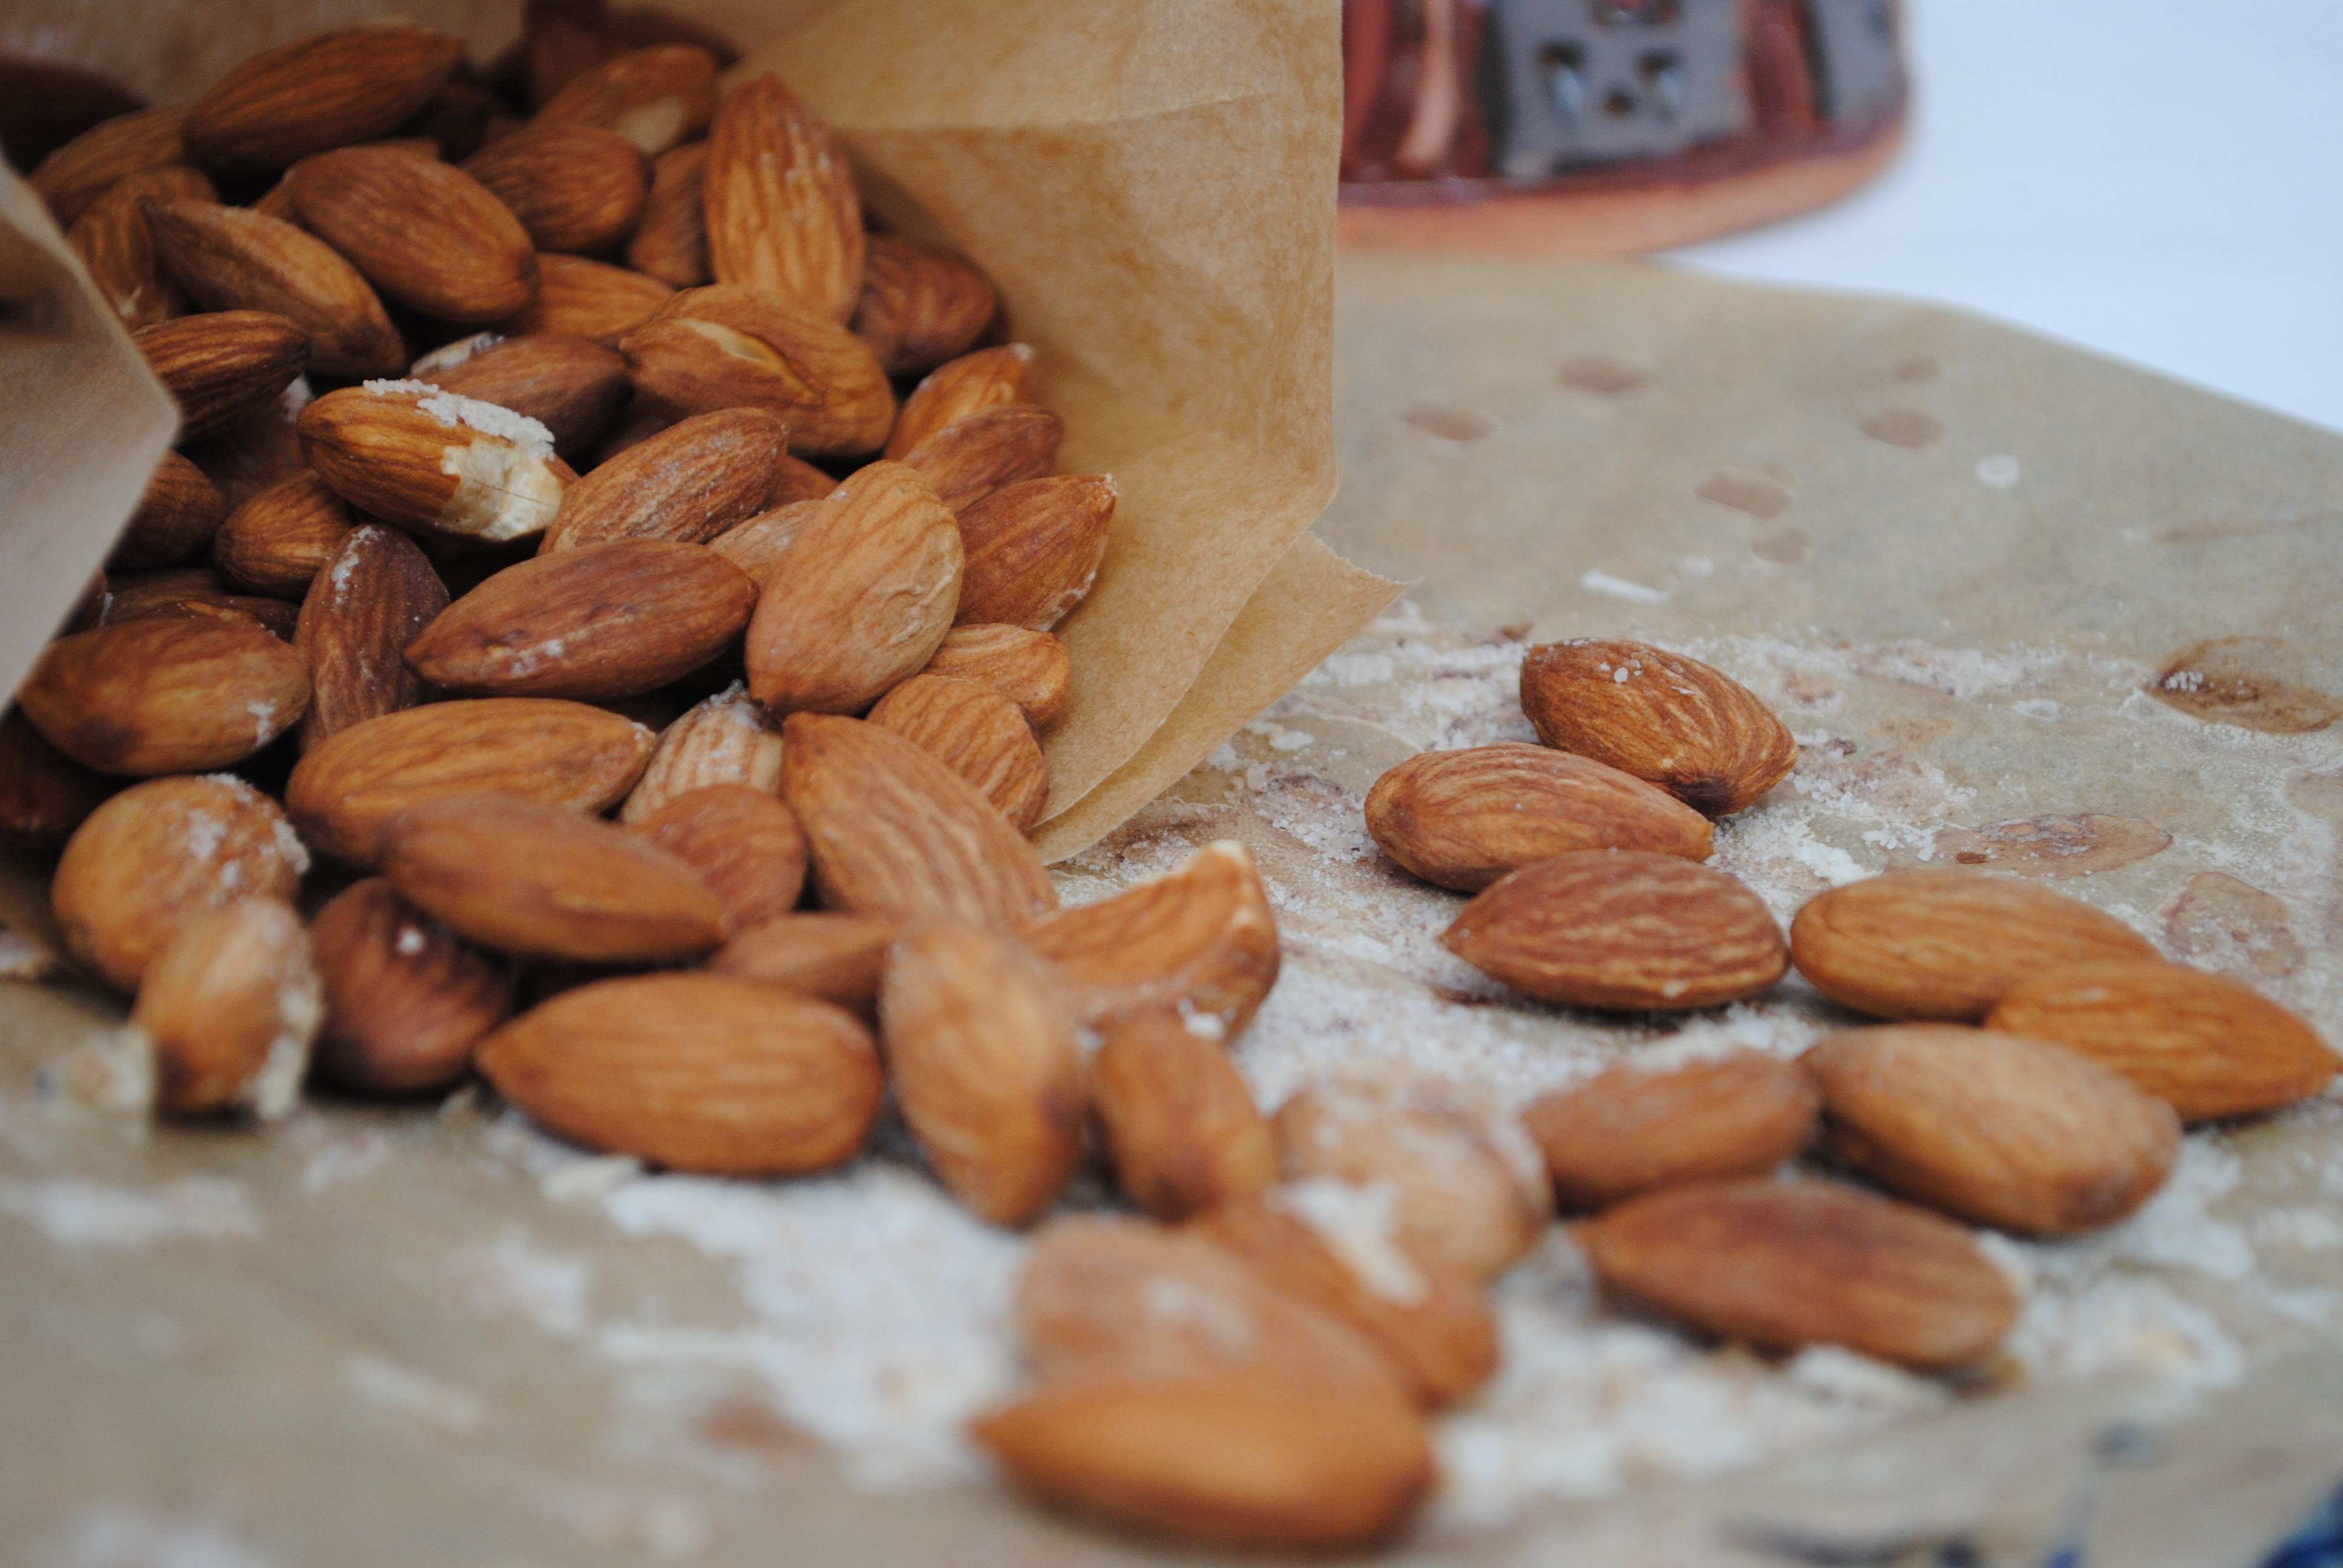 Moroccan roasted almonds